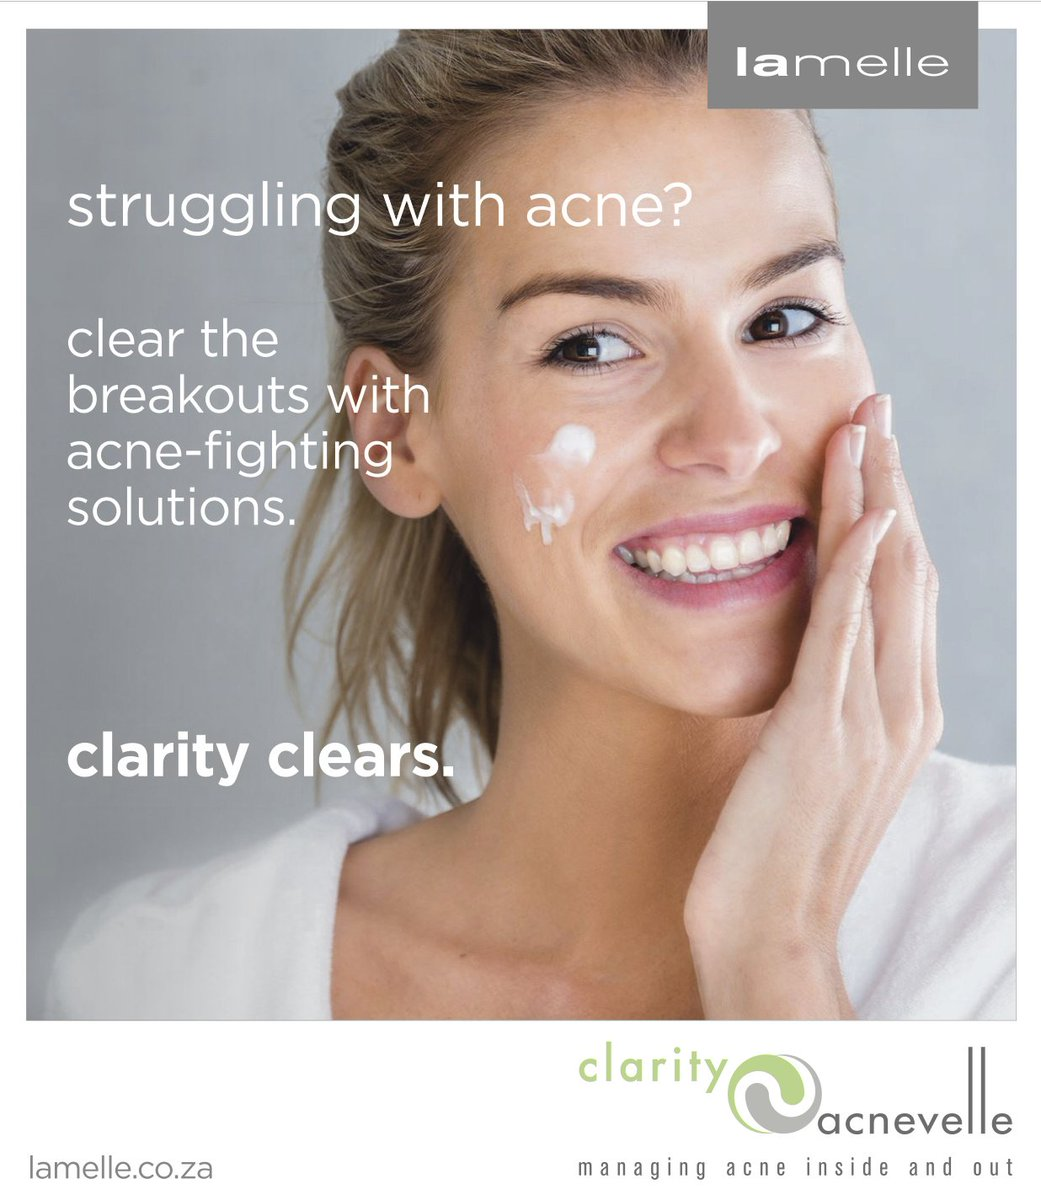 Clear breakouts with Clarity. #ClarityClears.